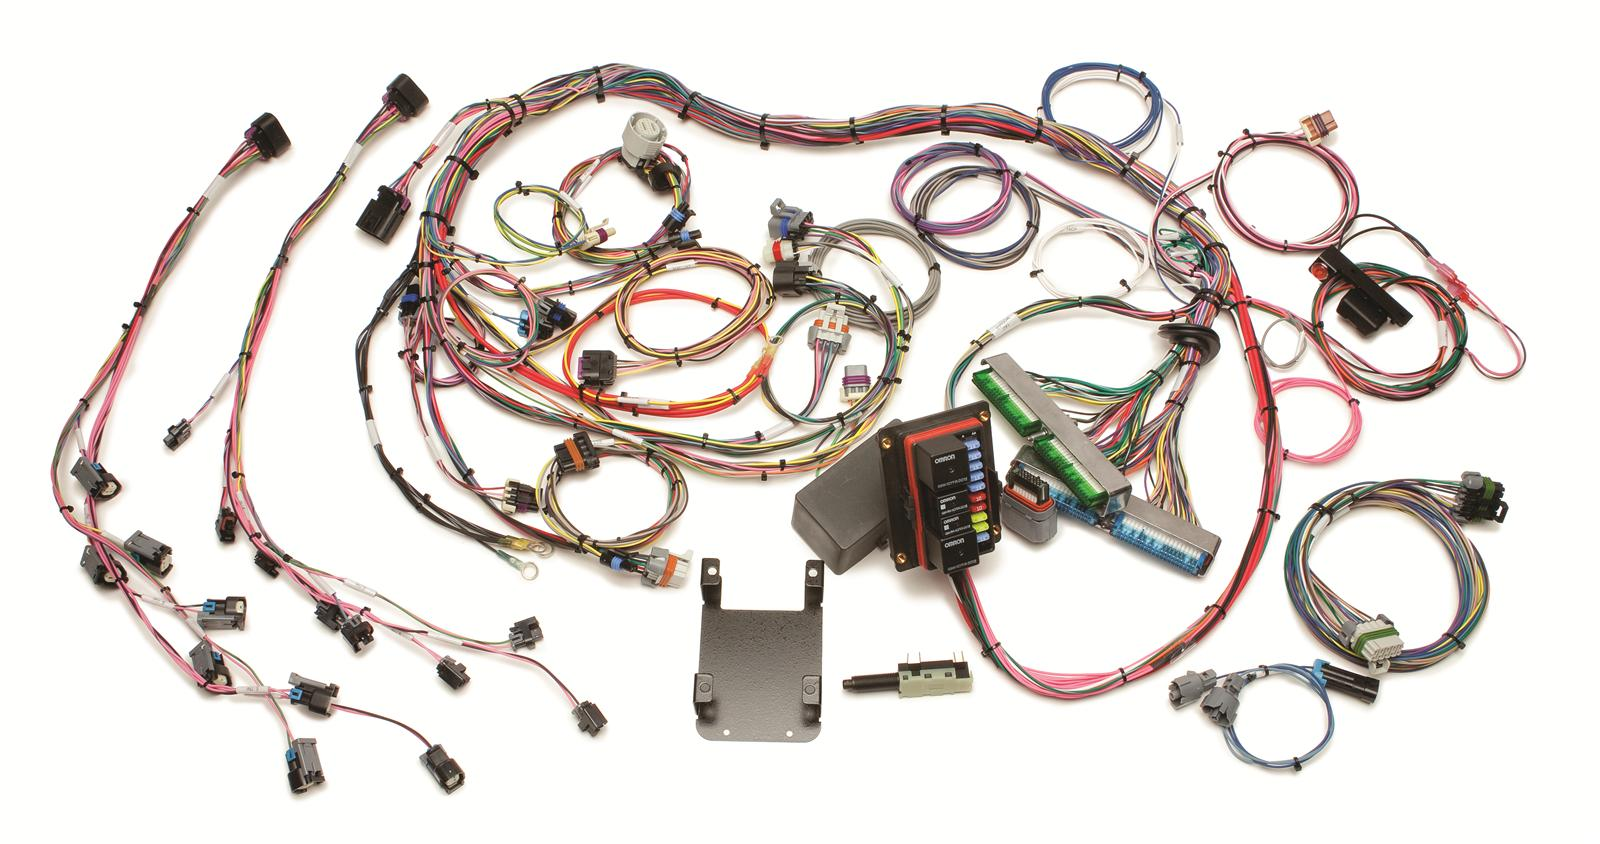 Painless Performance Fuel Injection Harnesses 60221 Free Shipping Wiring Loom On Orders Over 99 At Summit Racing